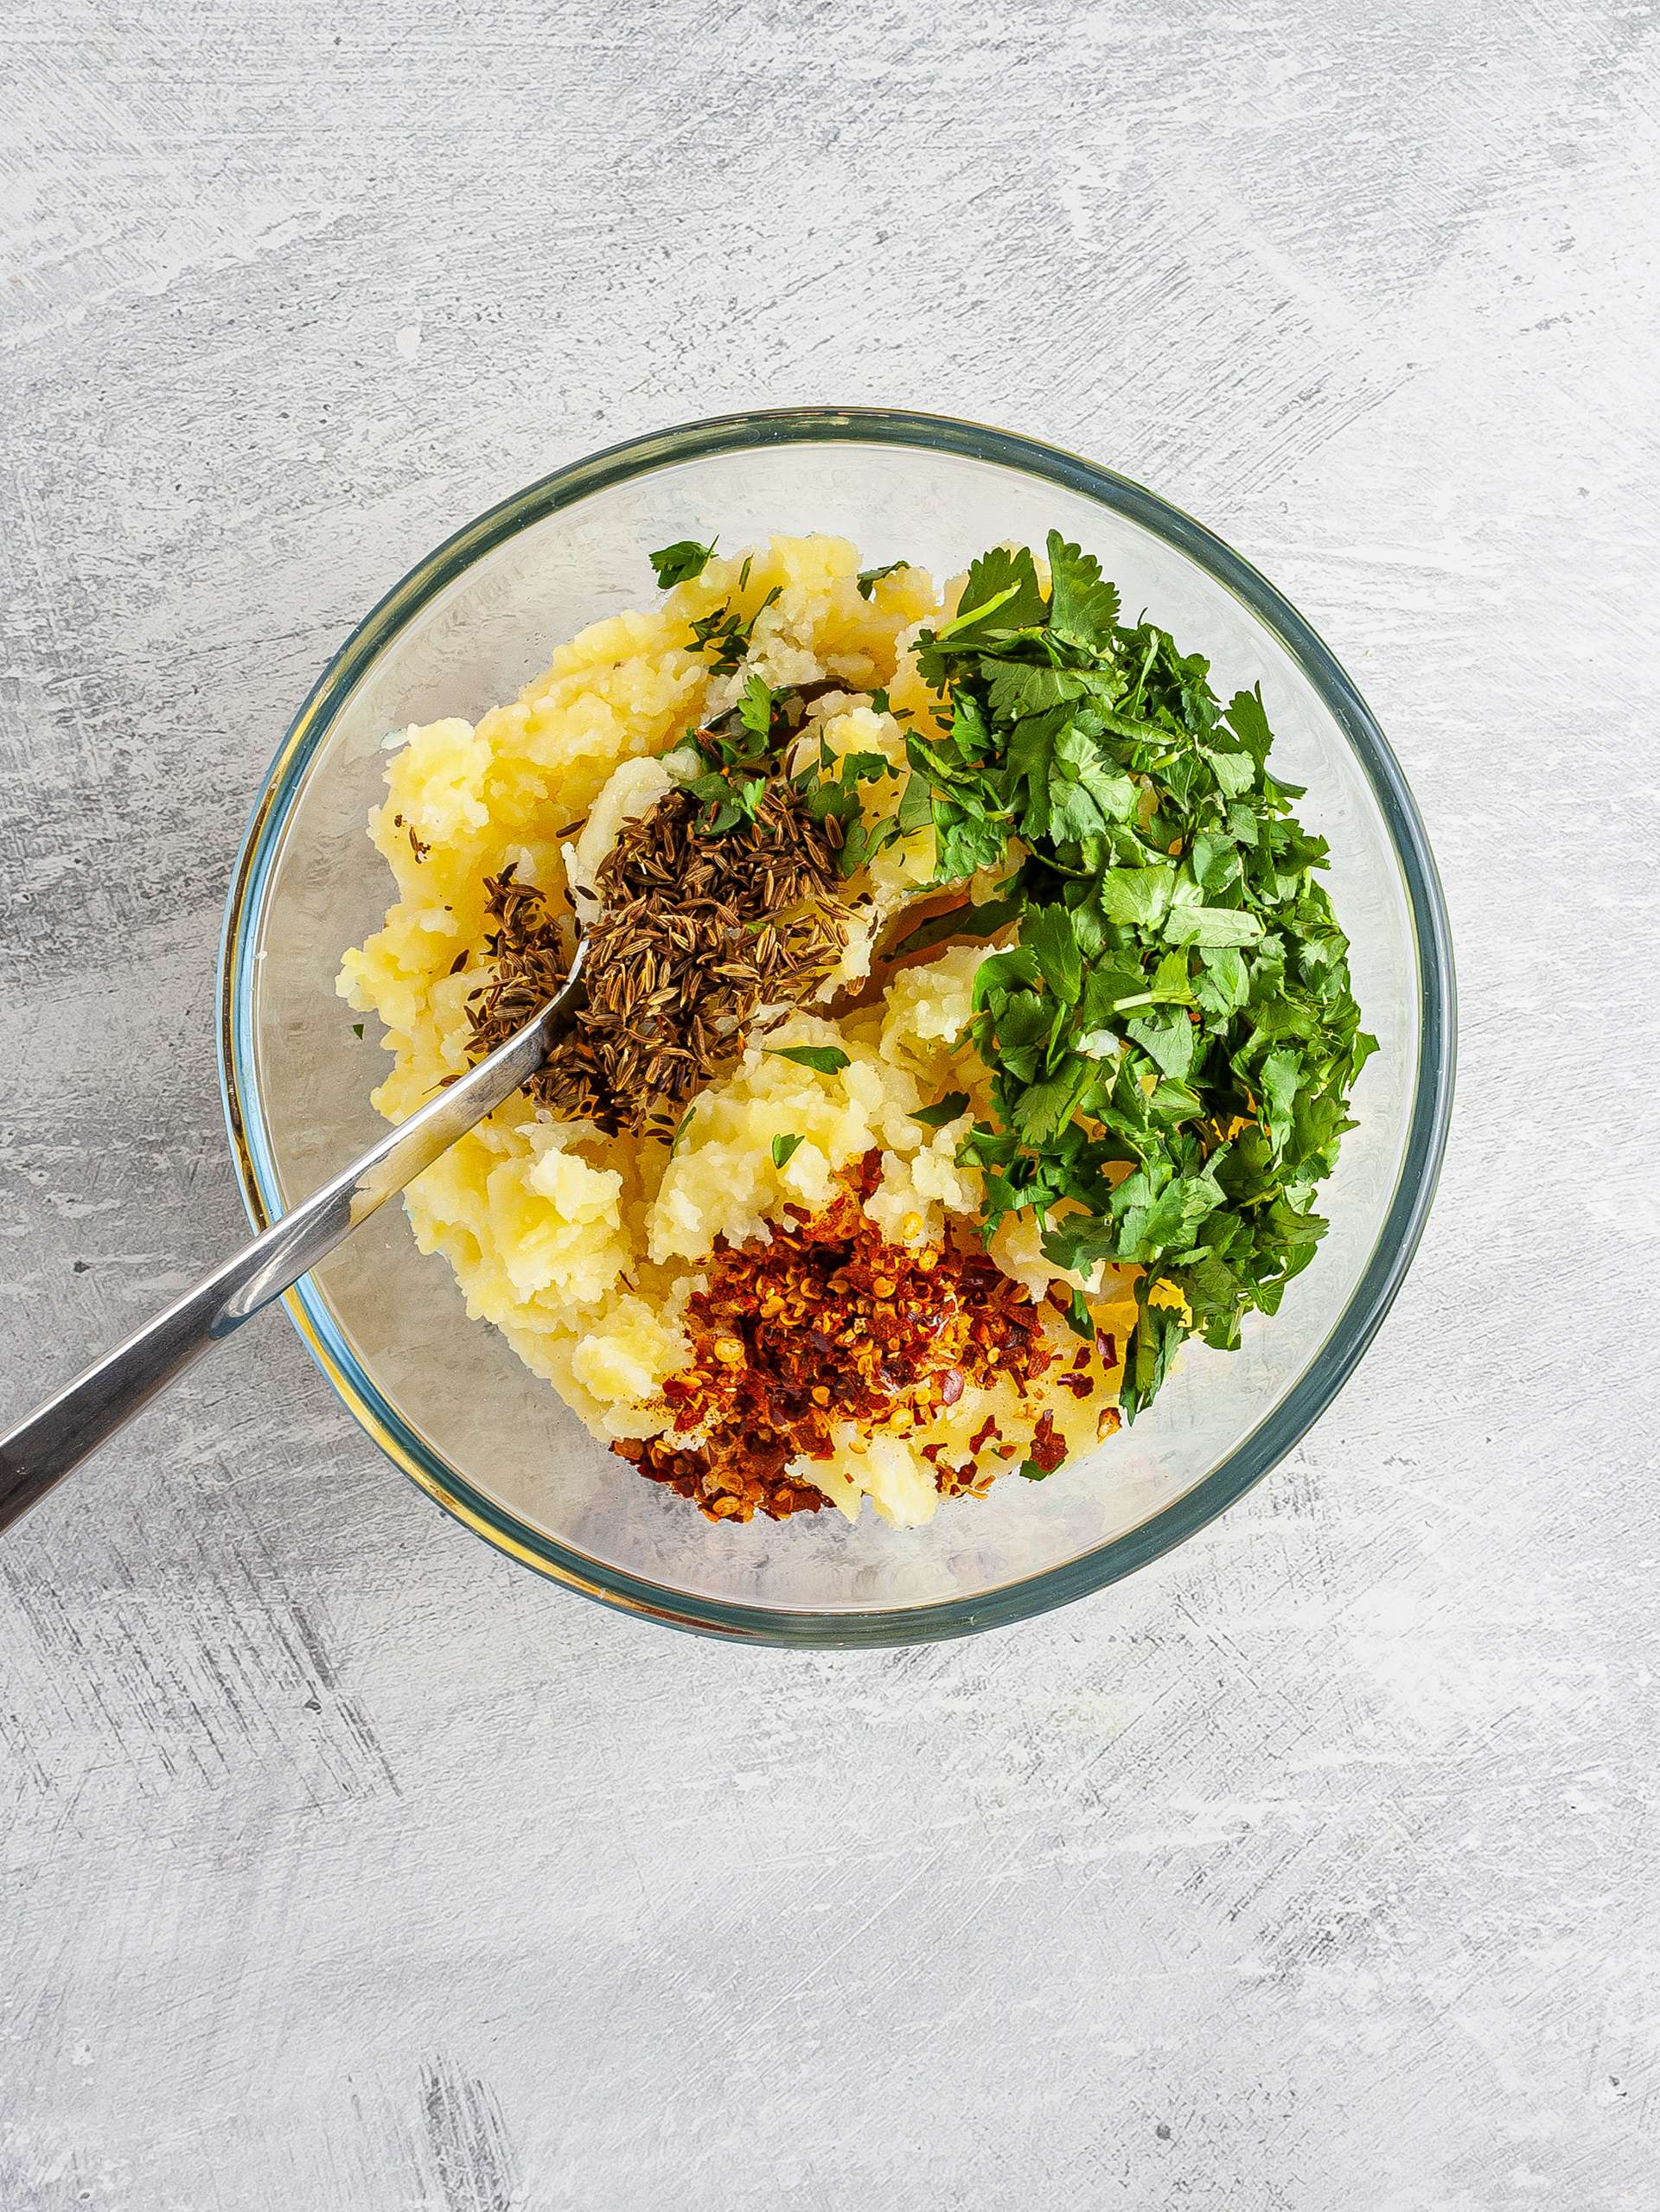 Mashed potatoes with coriander chillies and cumin